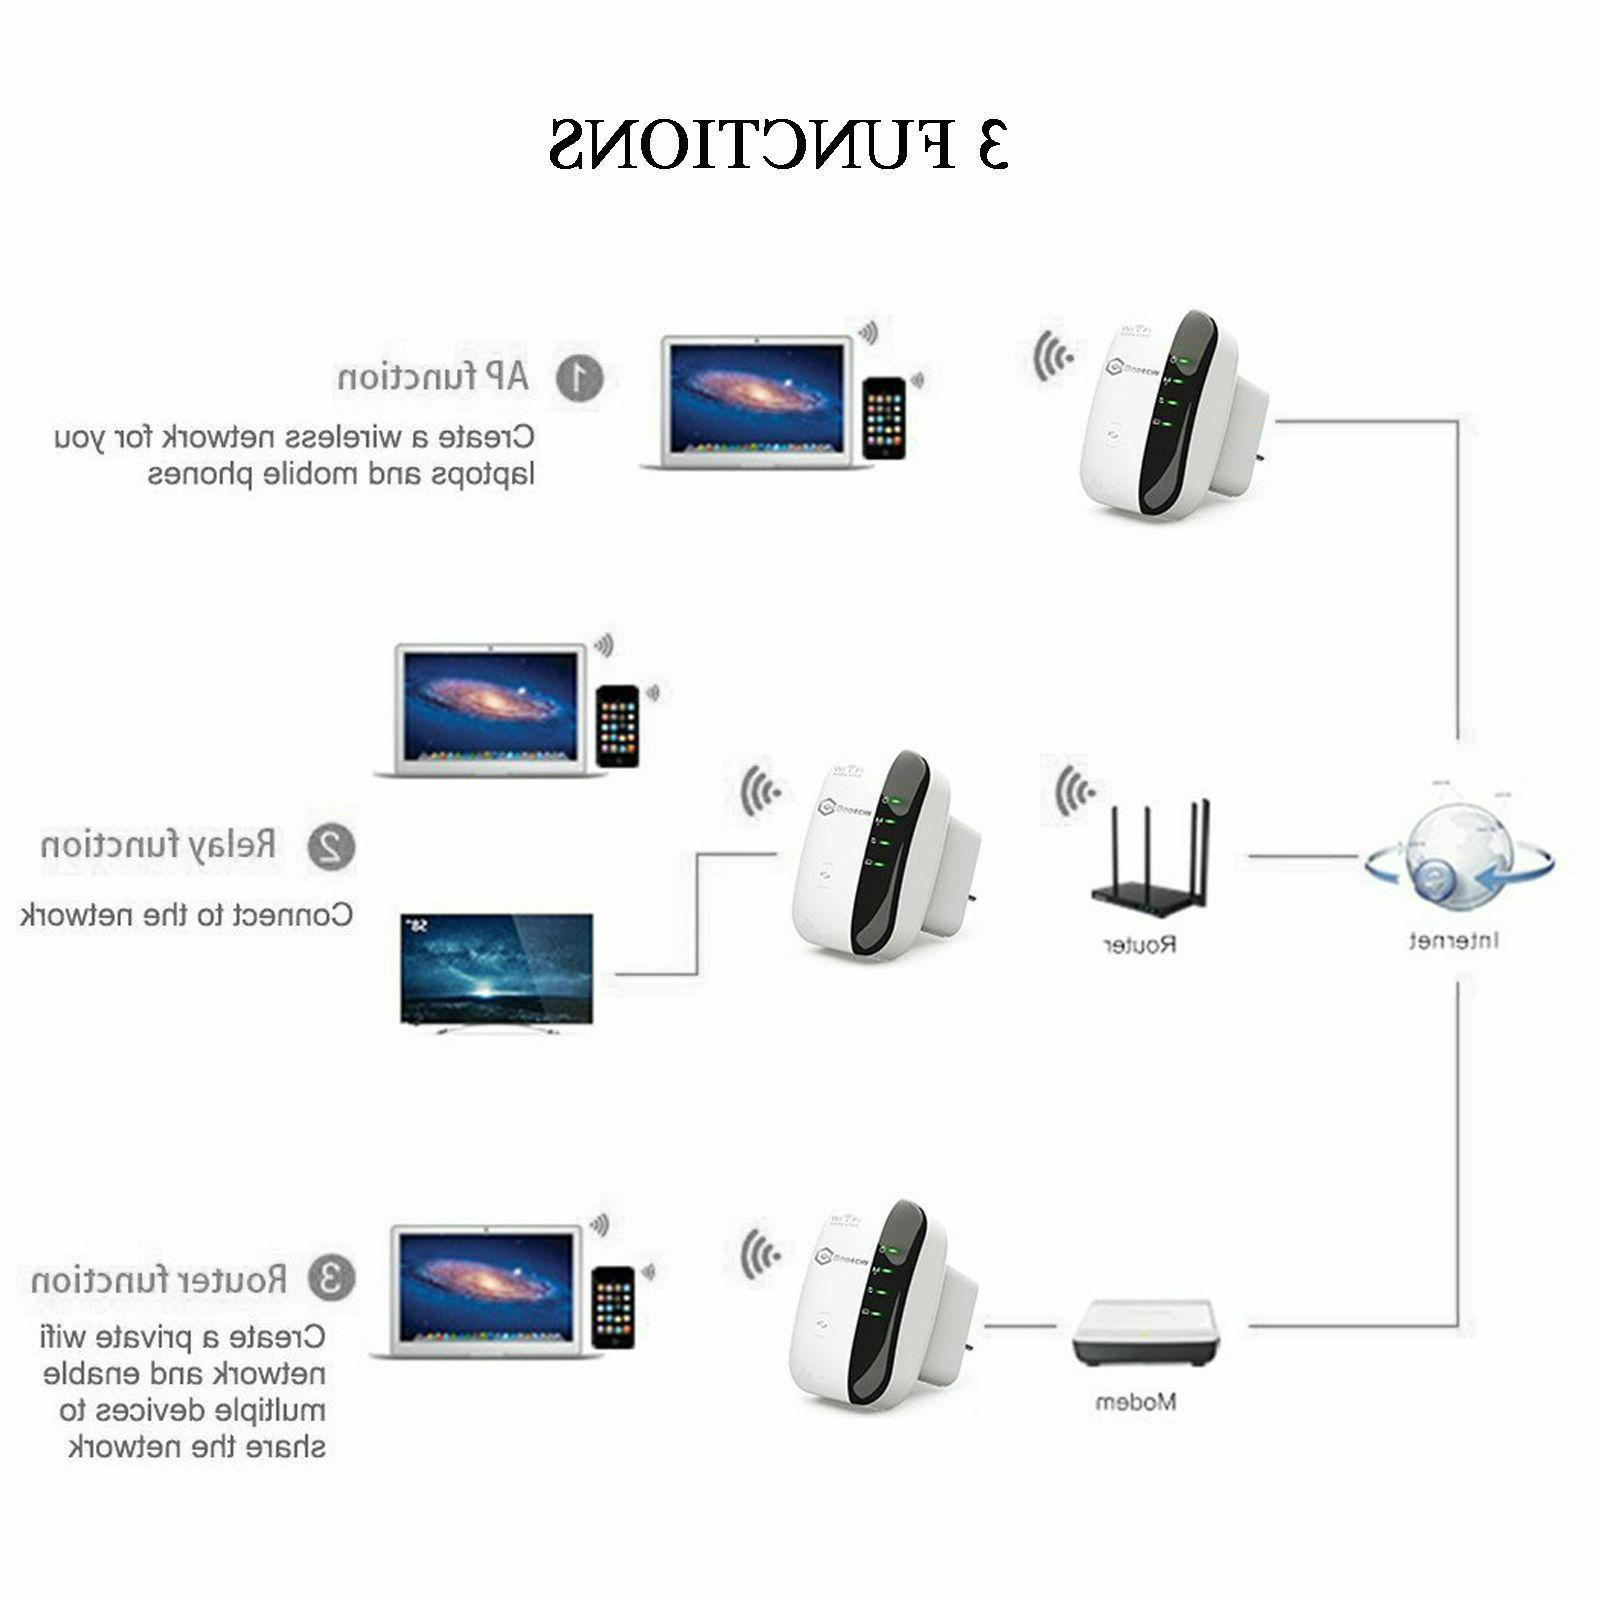 US 802.11 Router Signal Booster